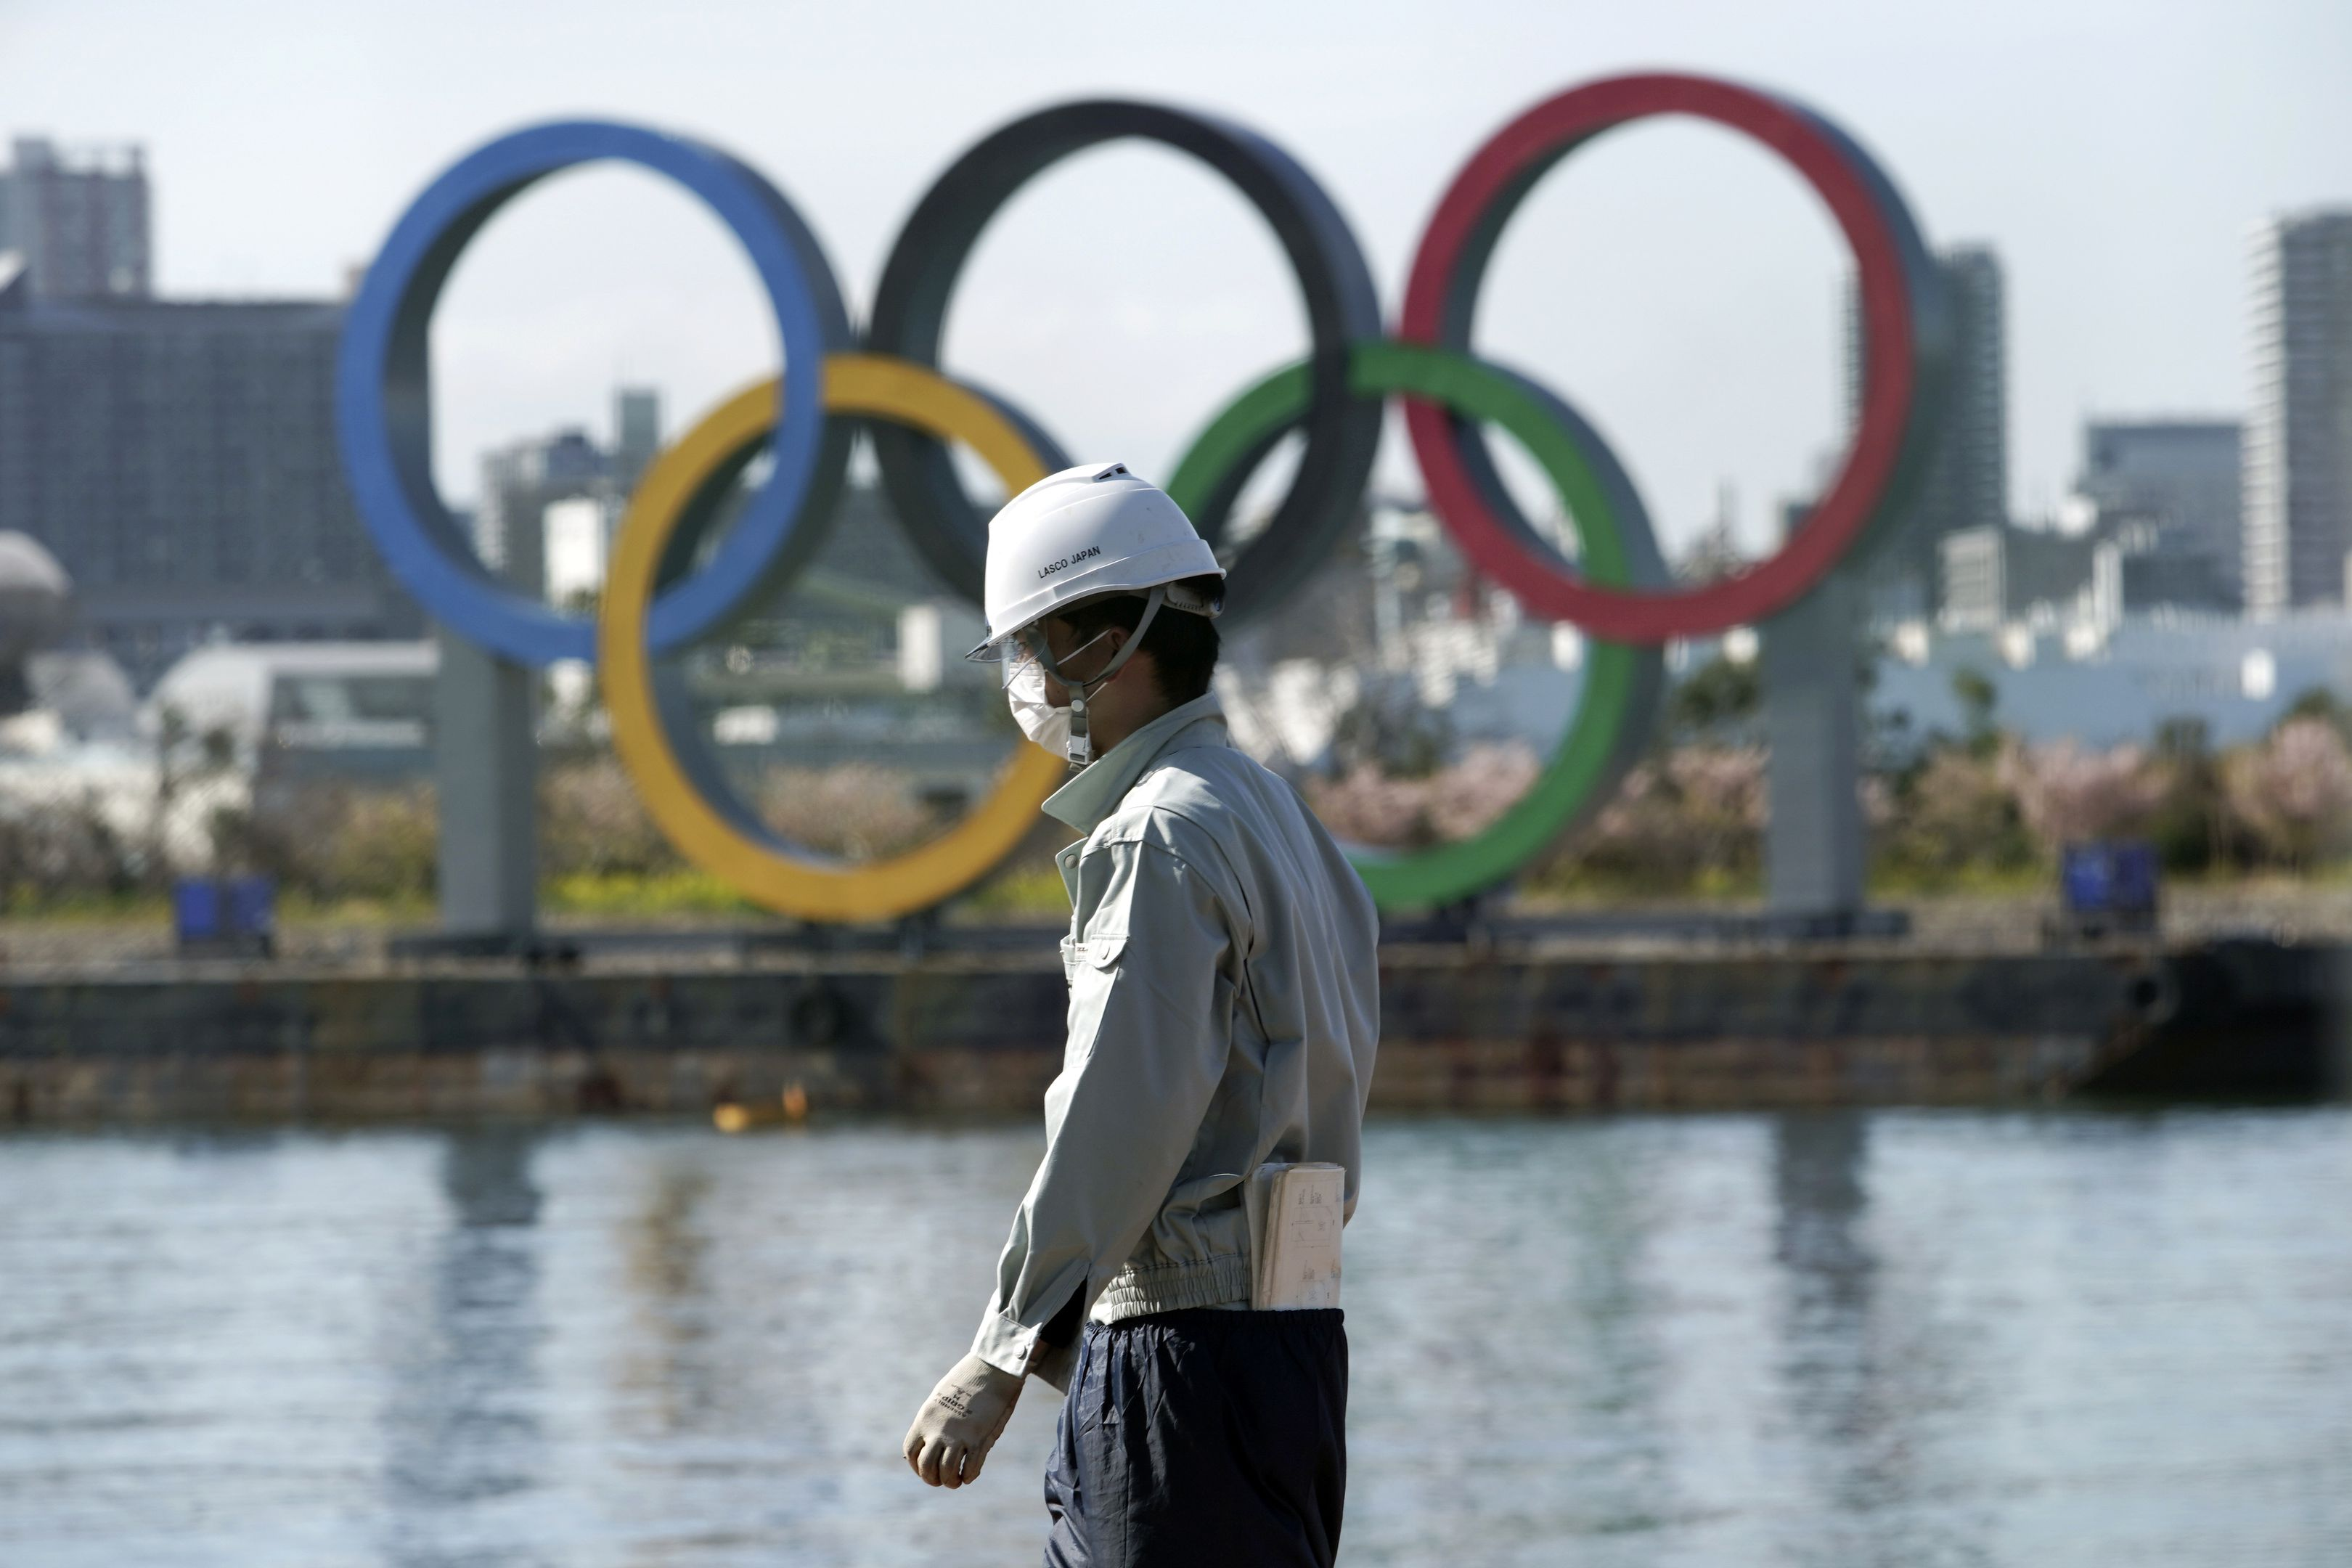 Olympics cancellation not on agenda: IOC – Wide World of Sports